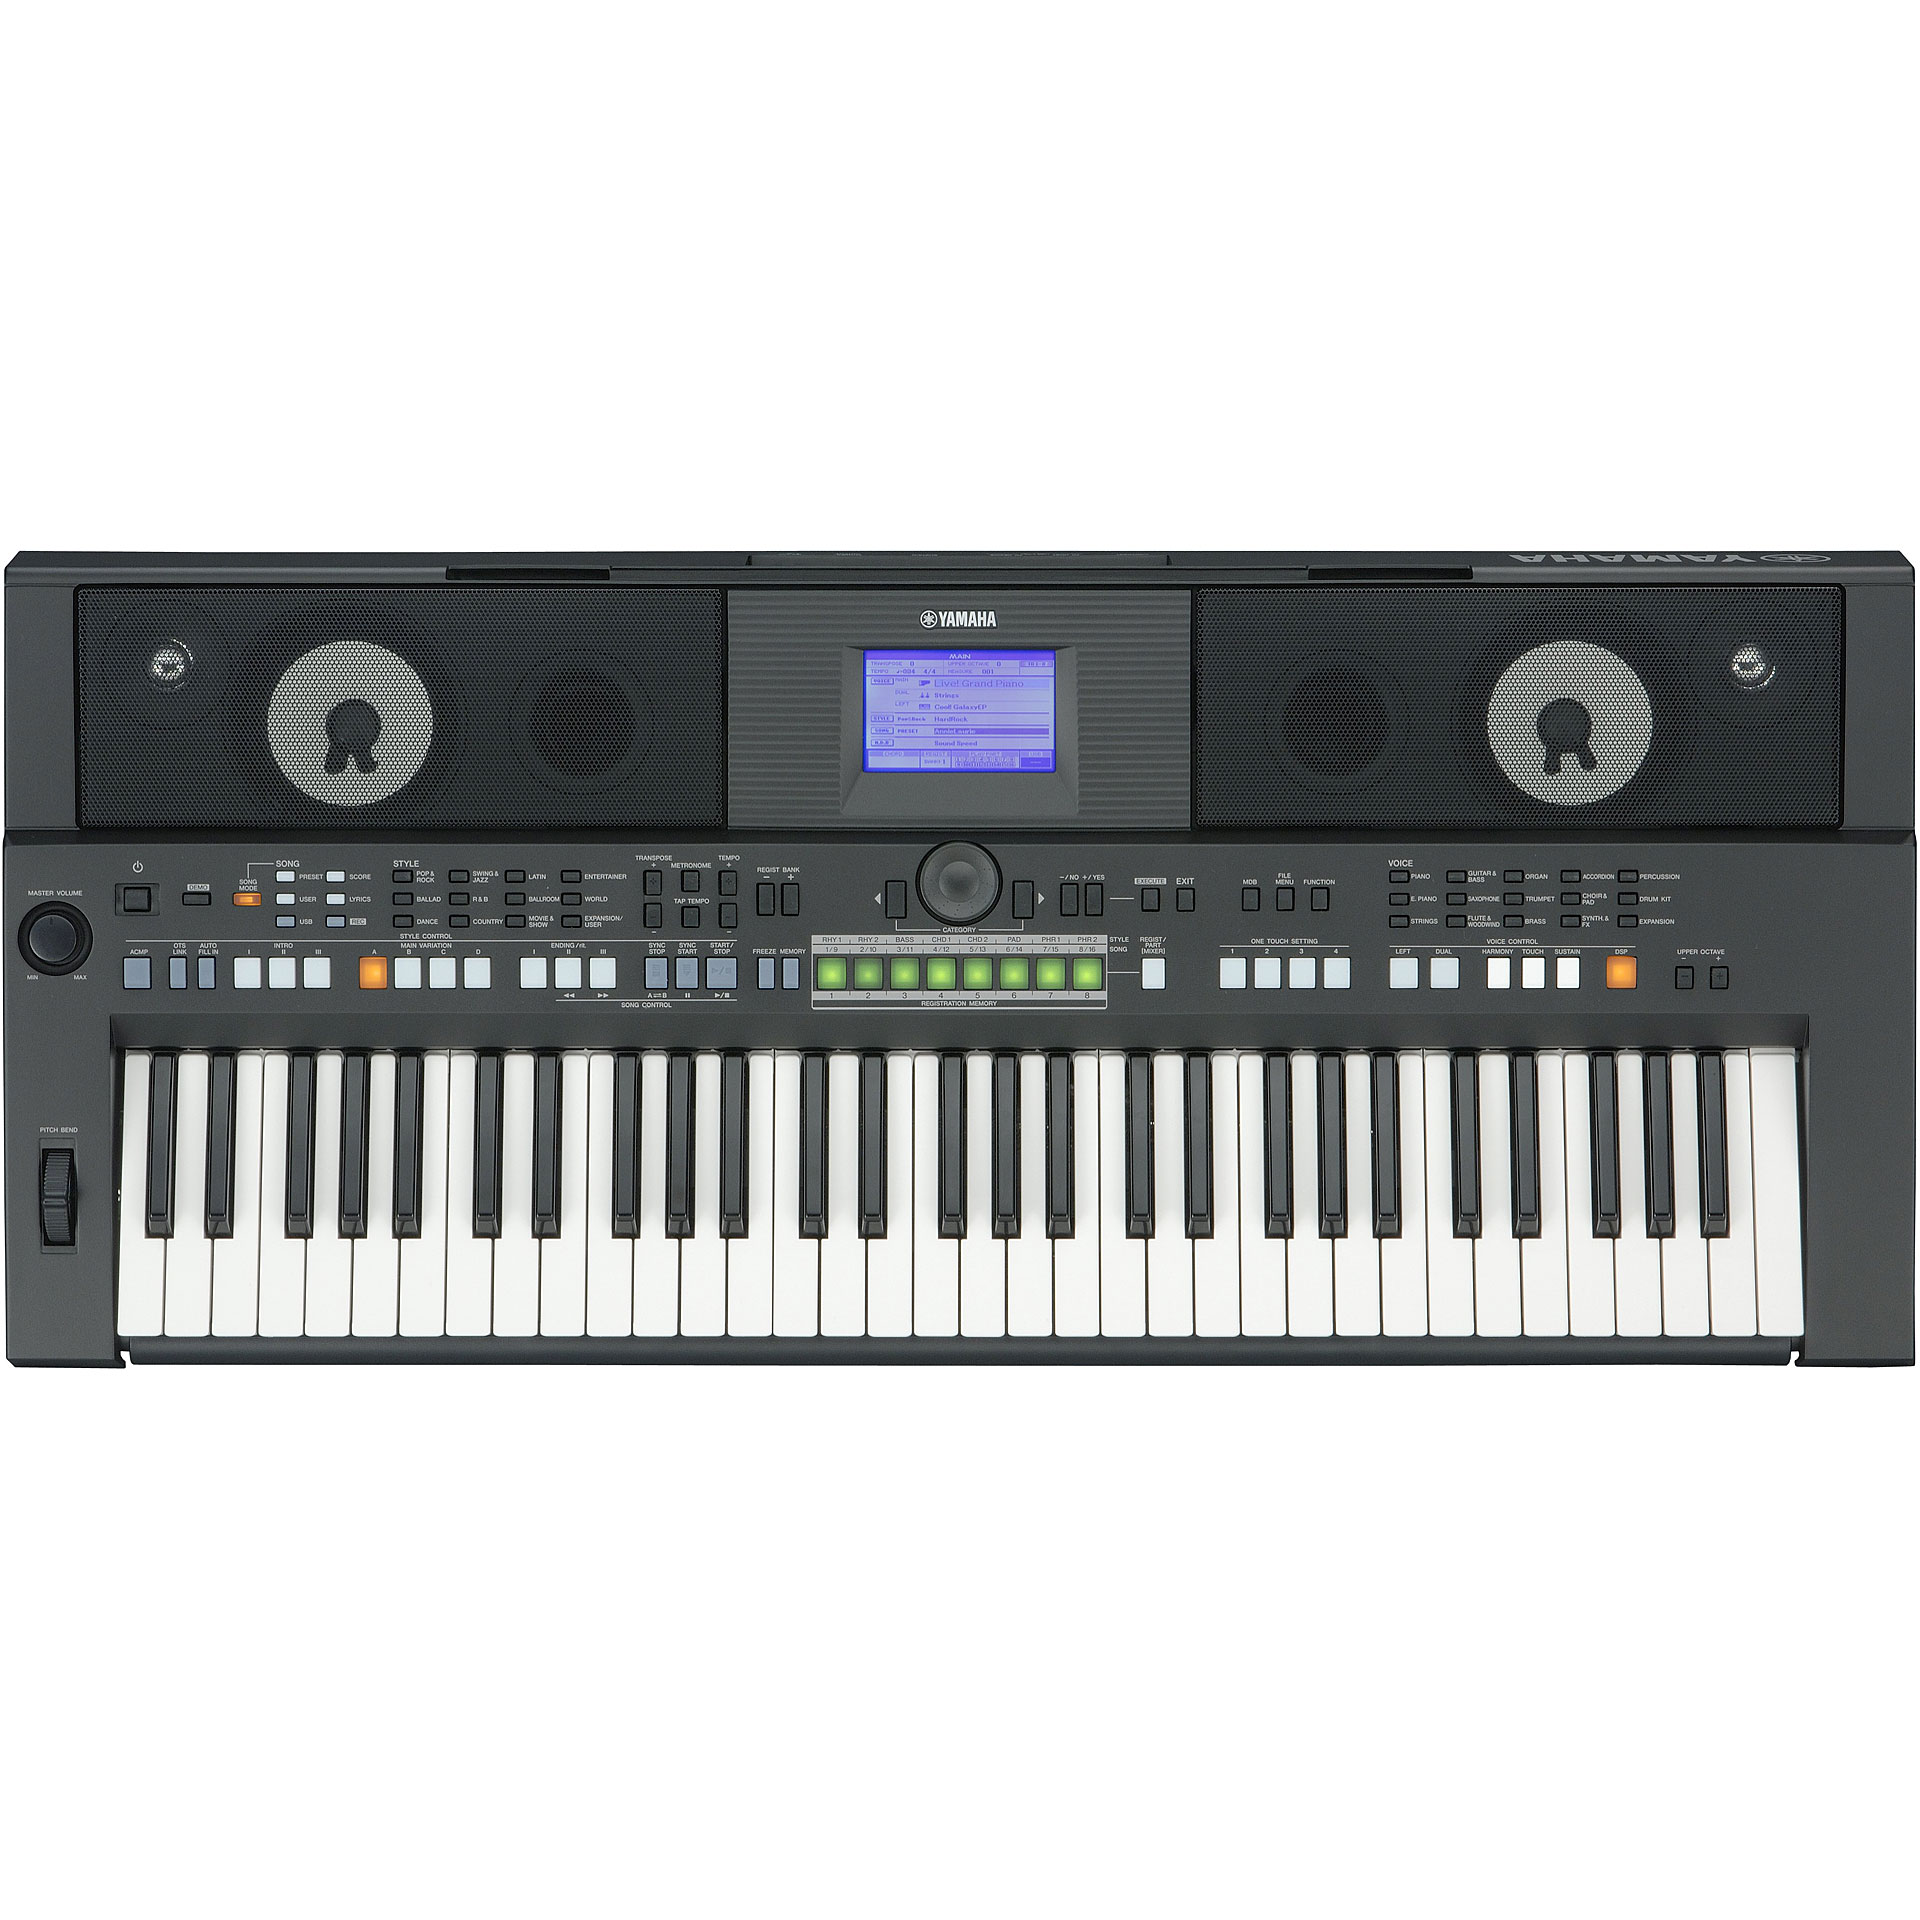 Watt Keyboard Yamaha